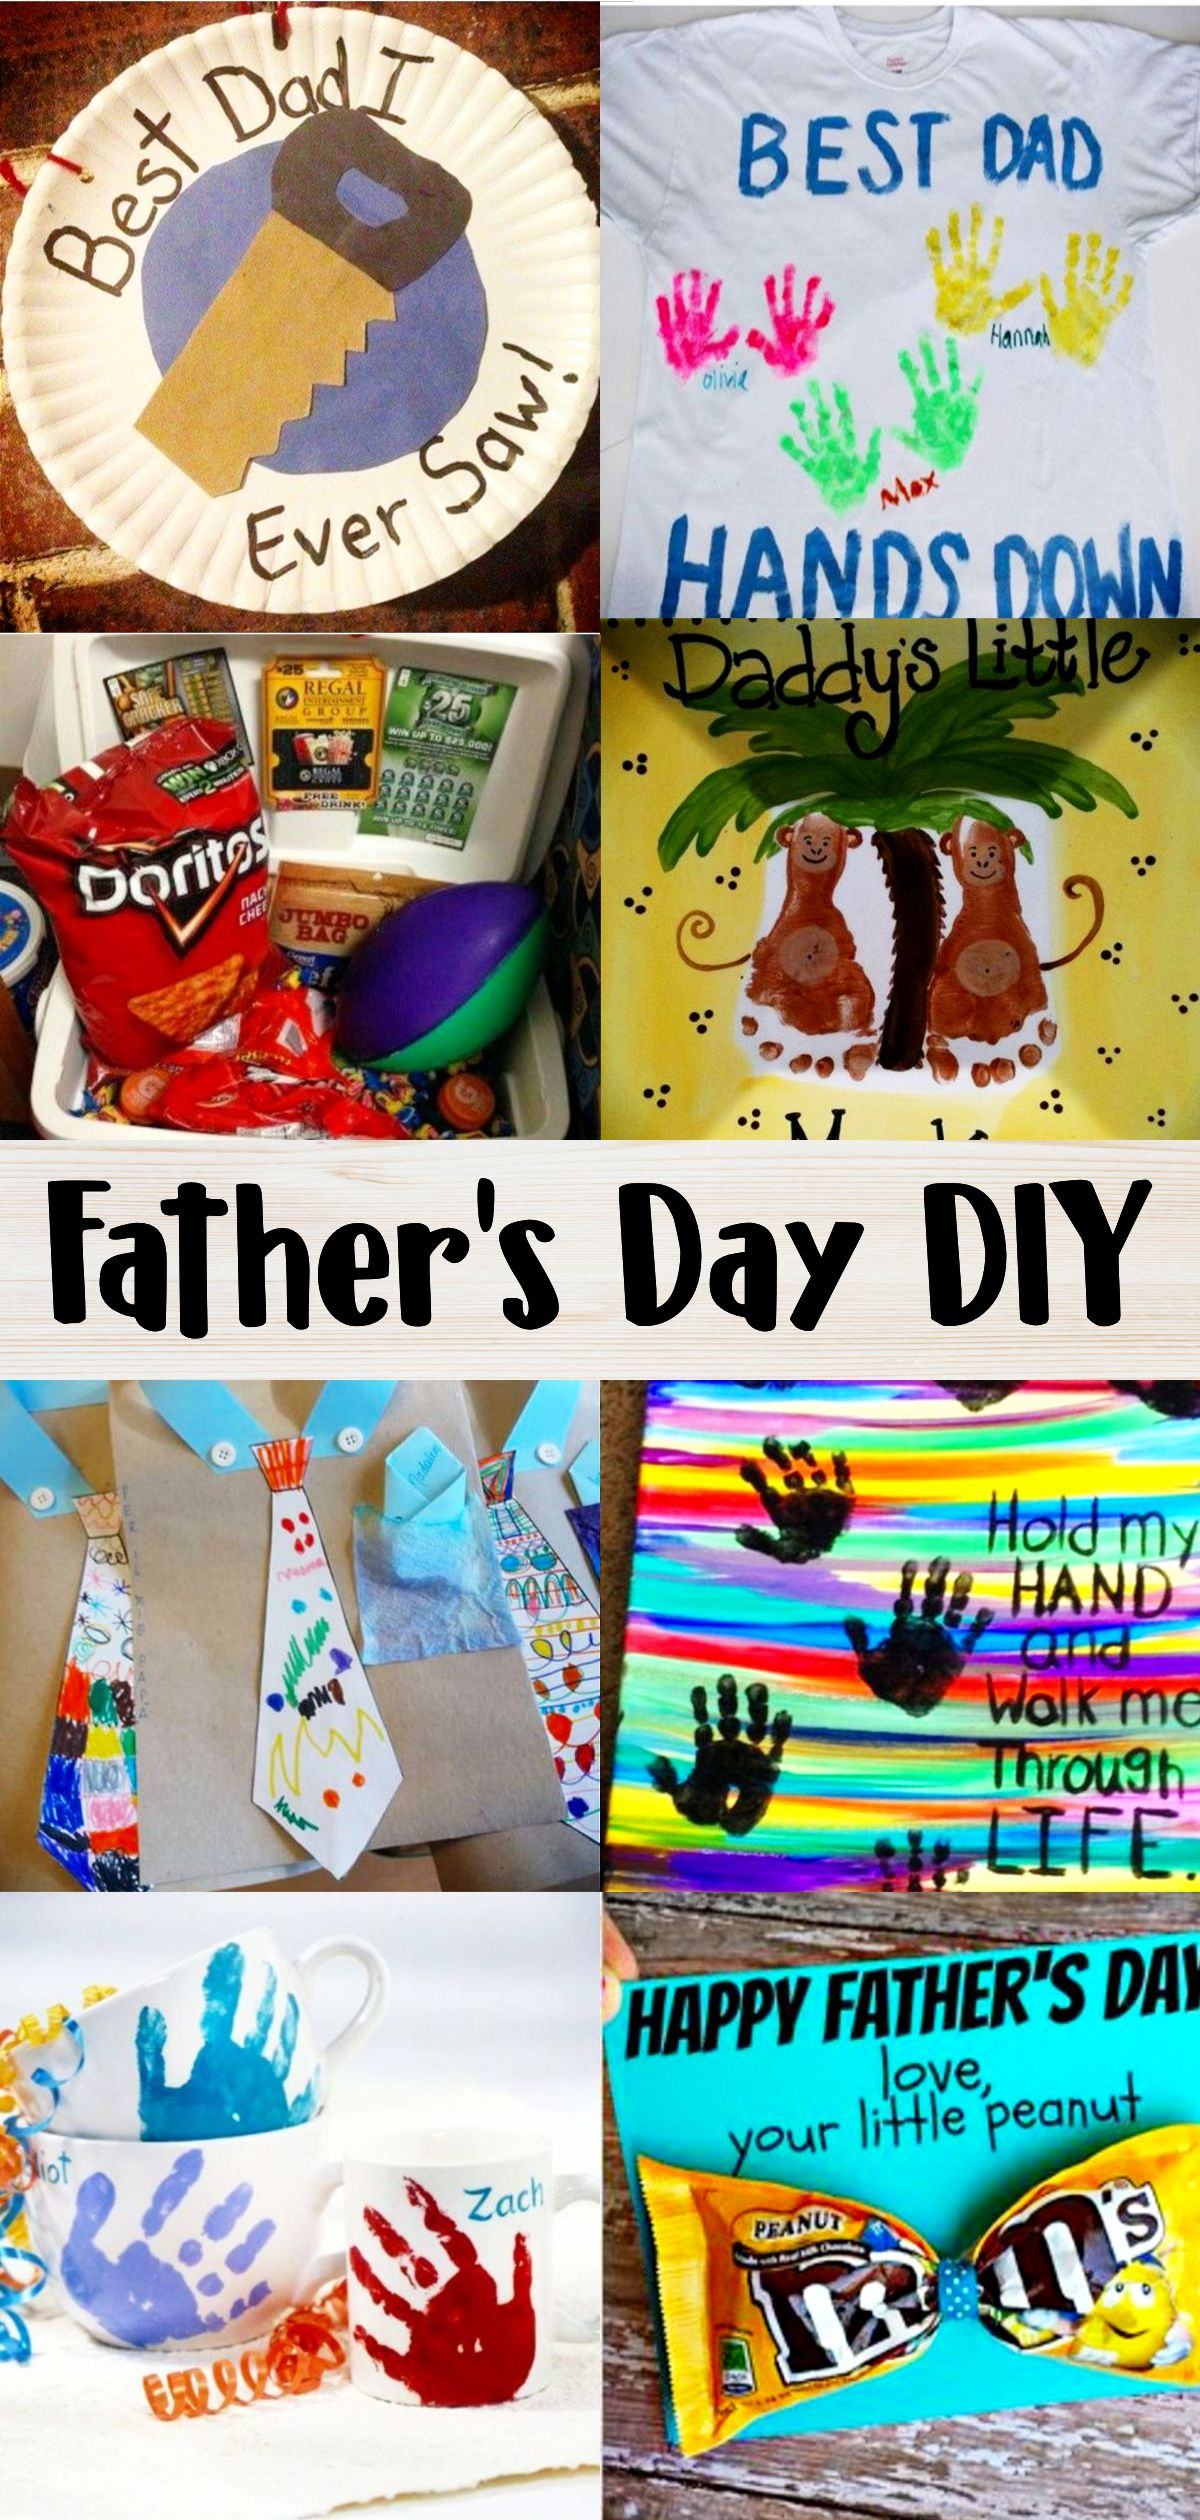 54 Easy Diy Father S Day Gifts From Kids And Fathers Day Crafts For